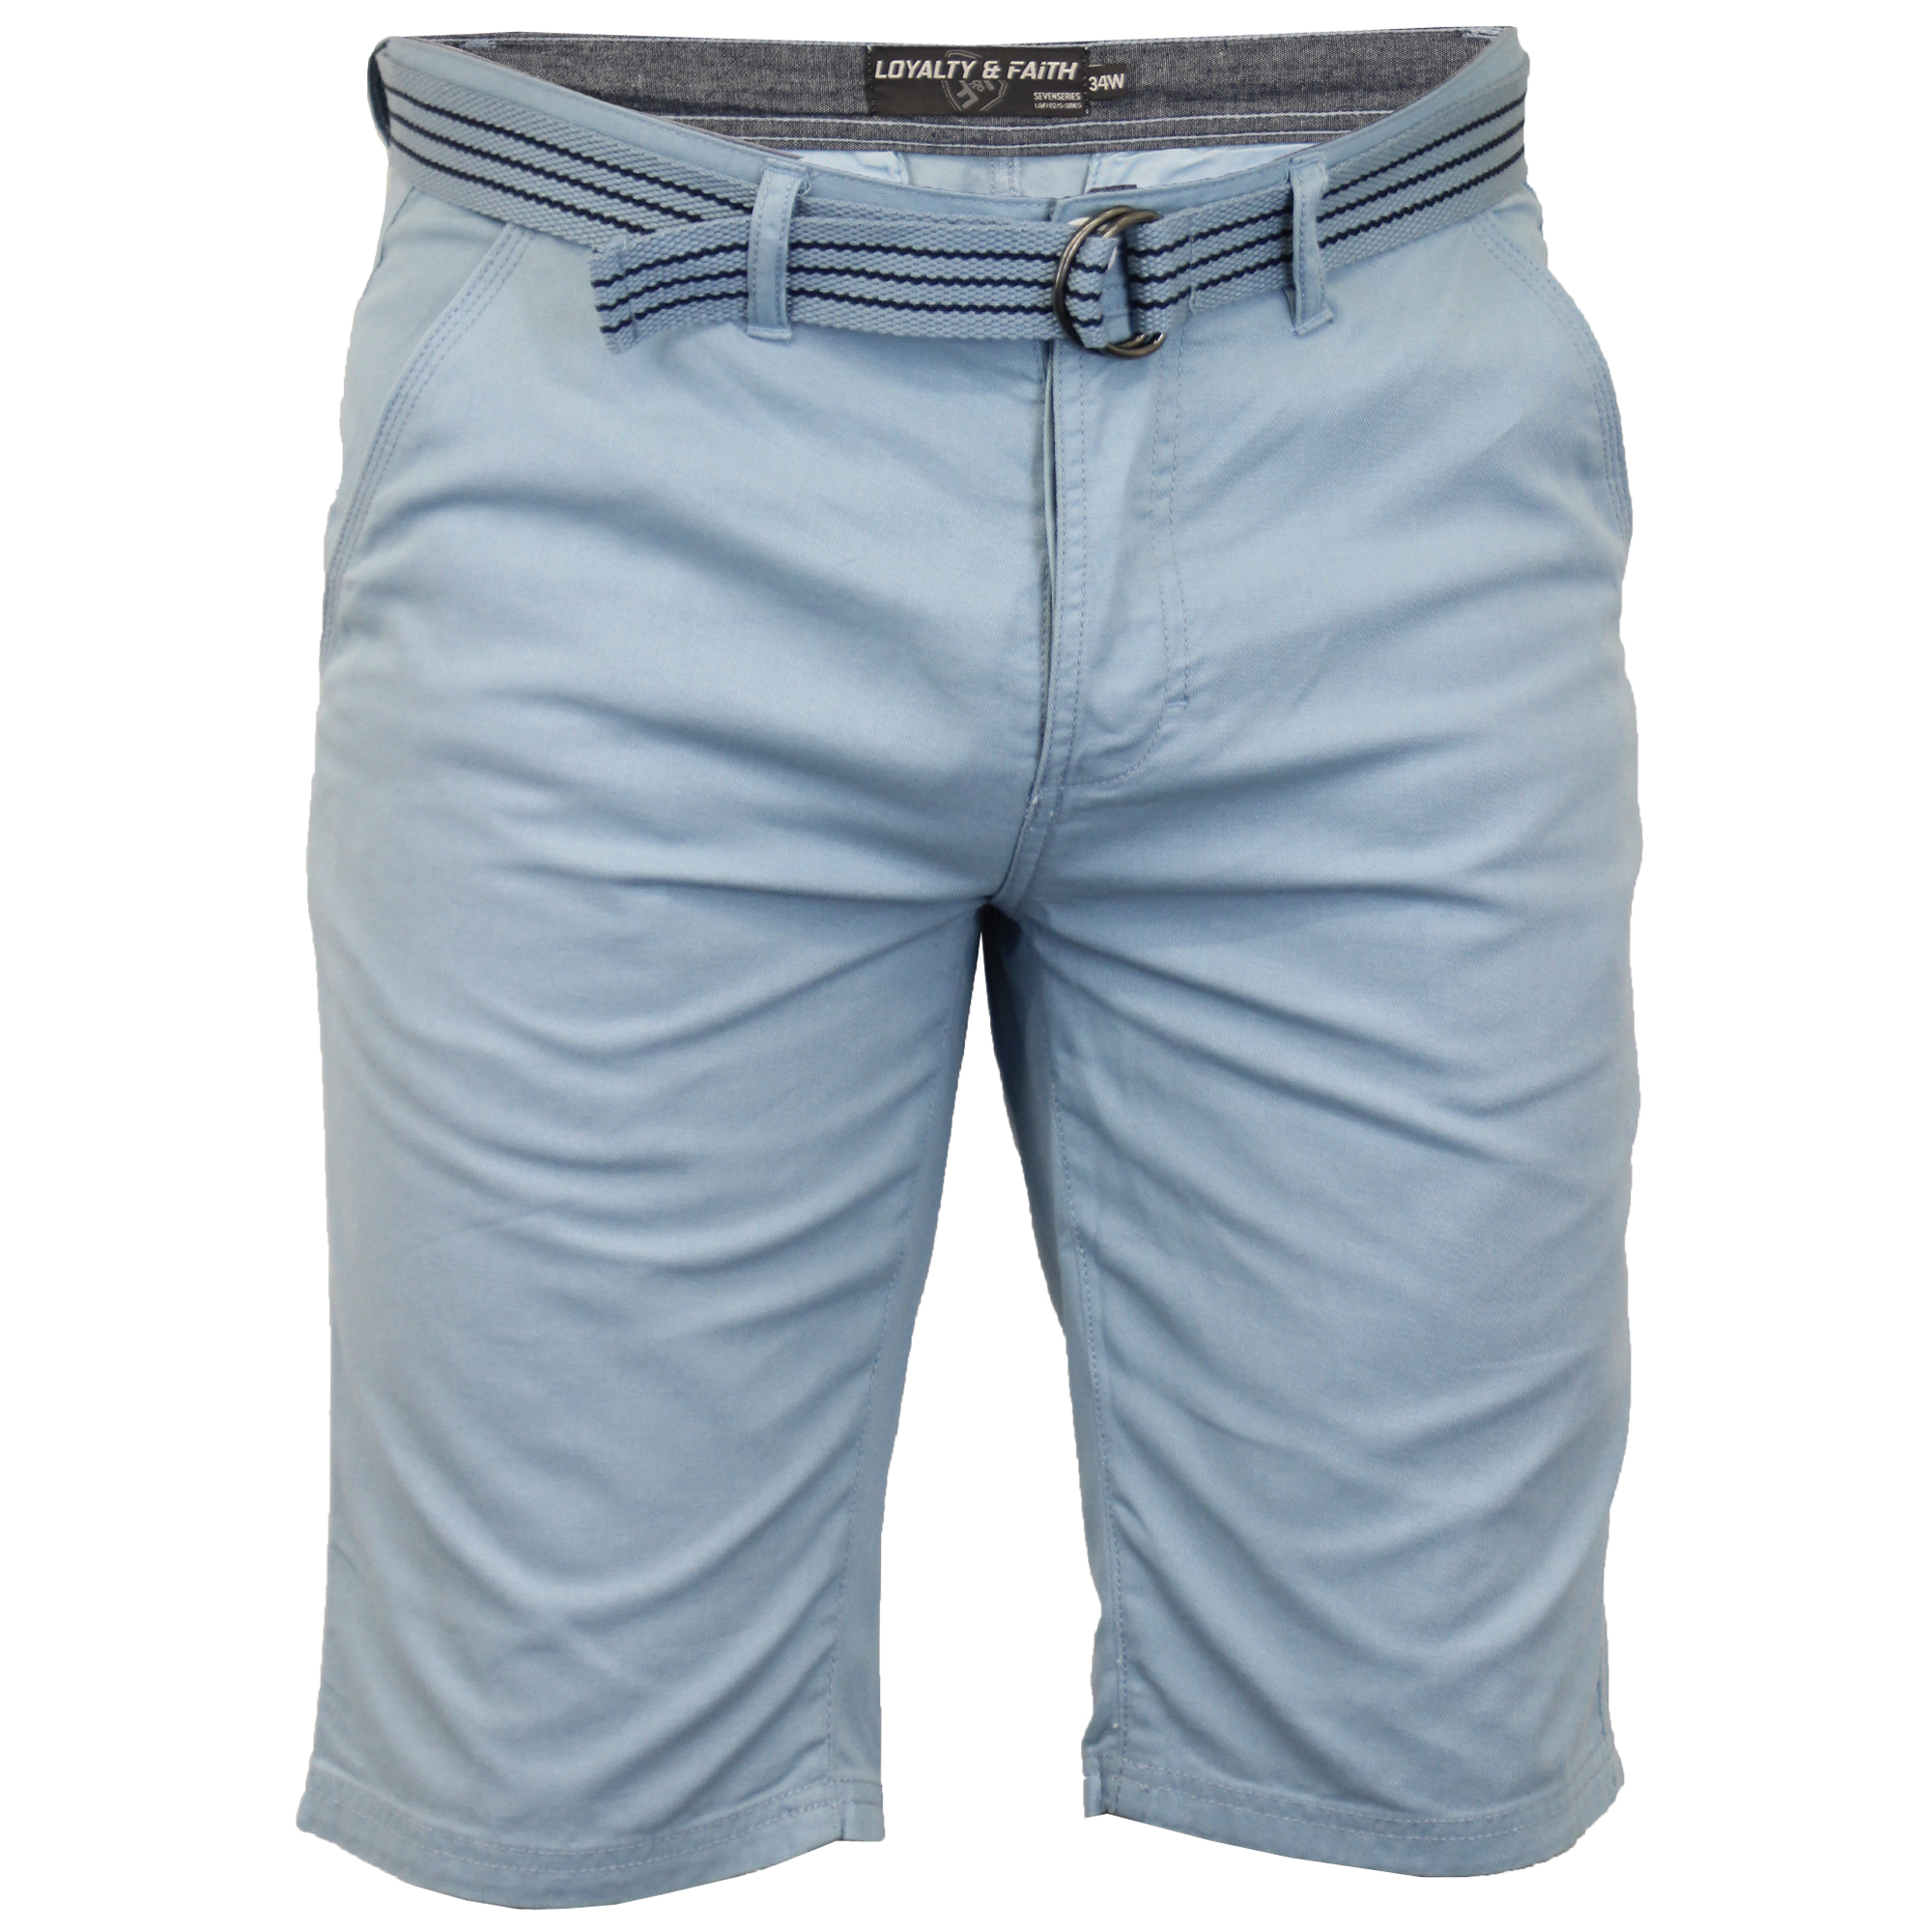 Mens-Chino-Shorts-Threadbare-Cotton-Oxford-Belted-Loyalty-amp-Faith-Seven-Series thumbnail 10